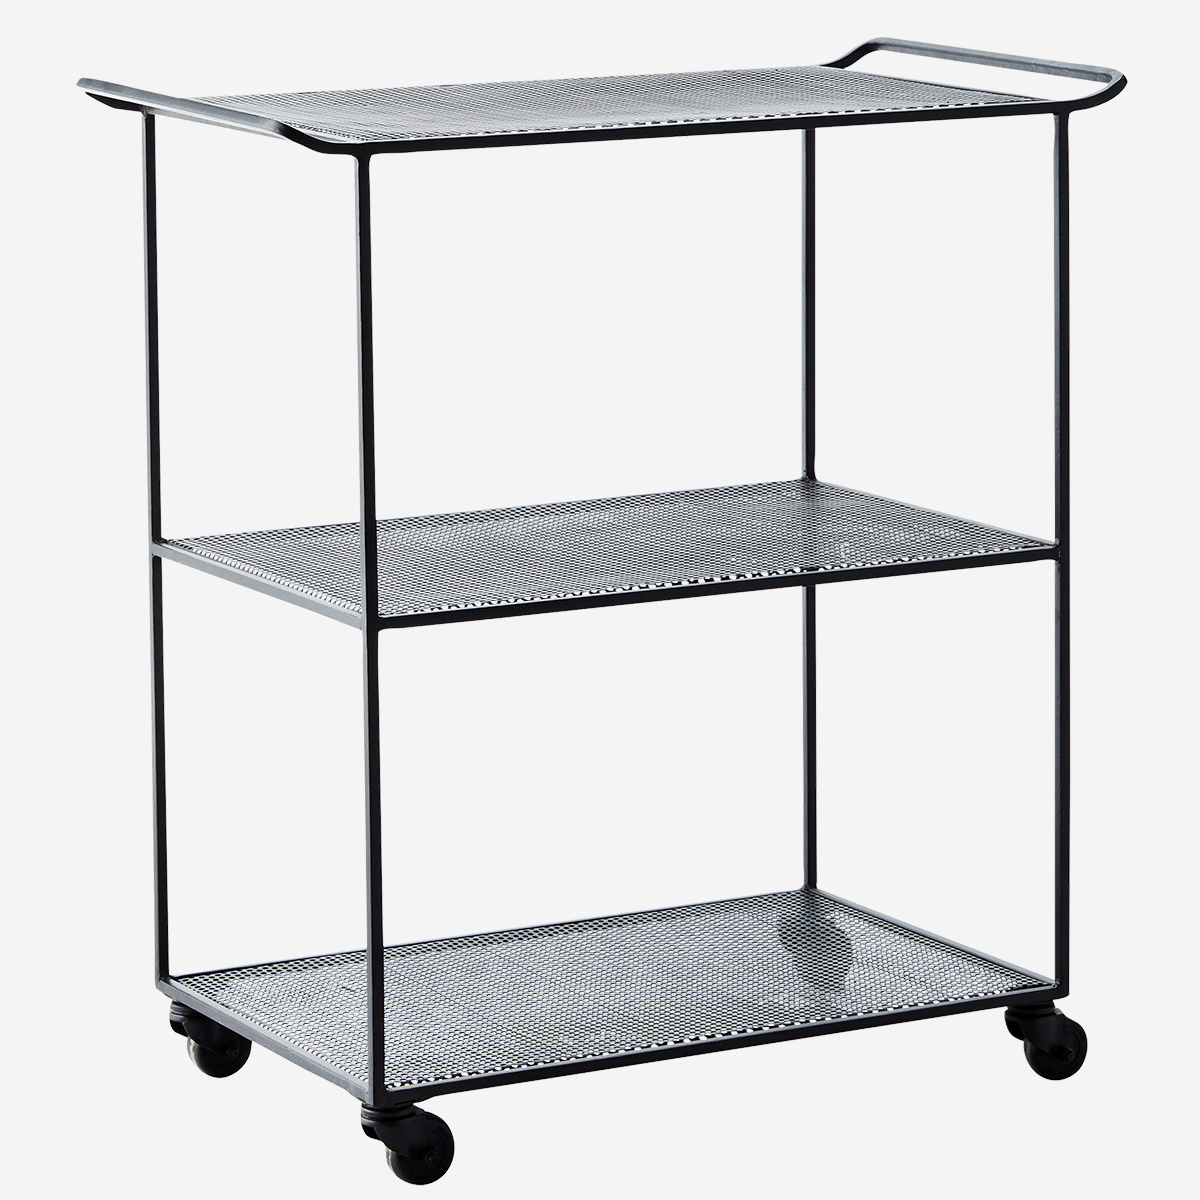 Rectangular iron trolley